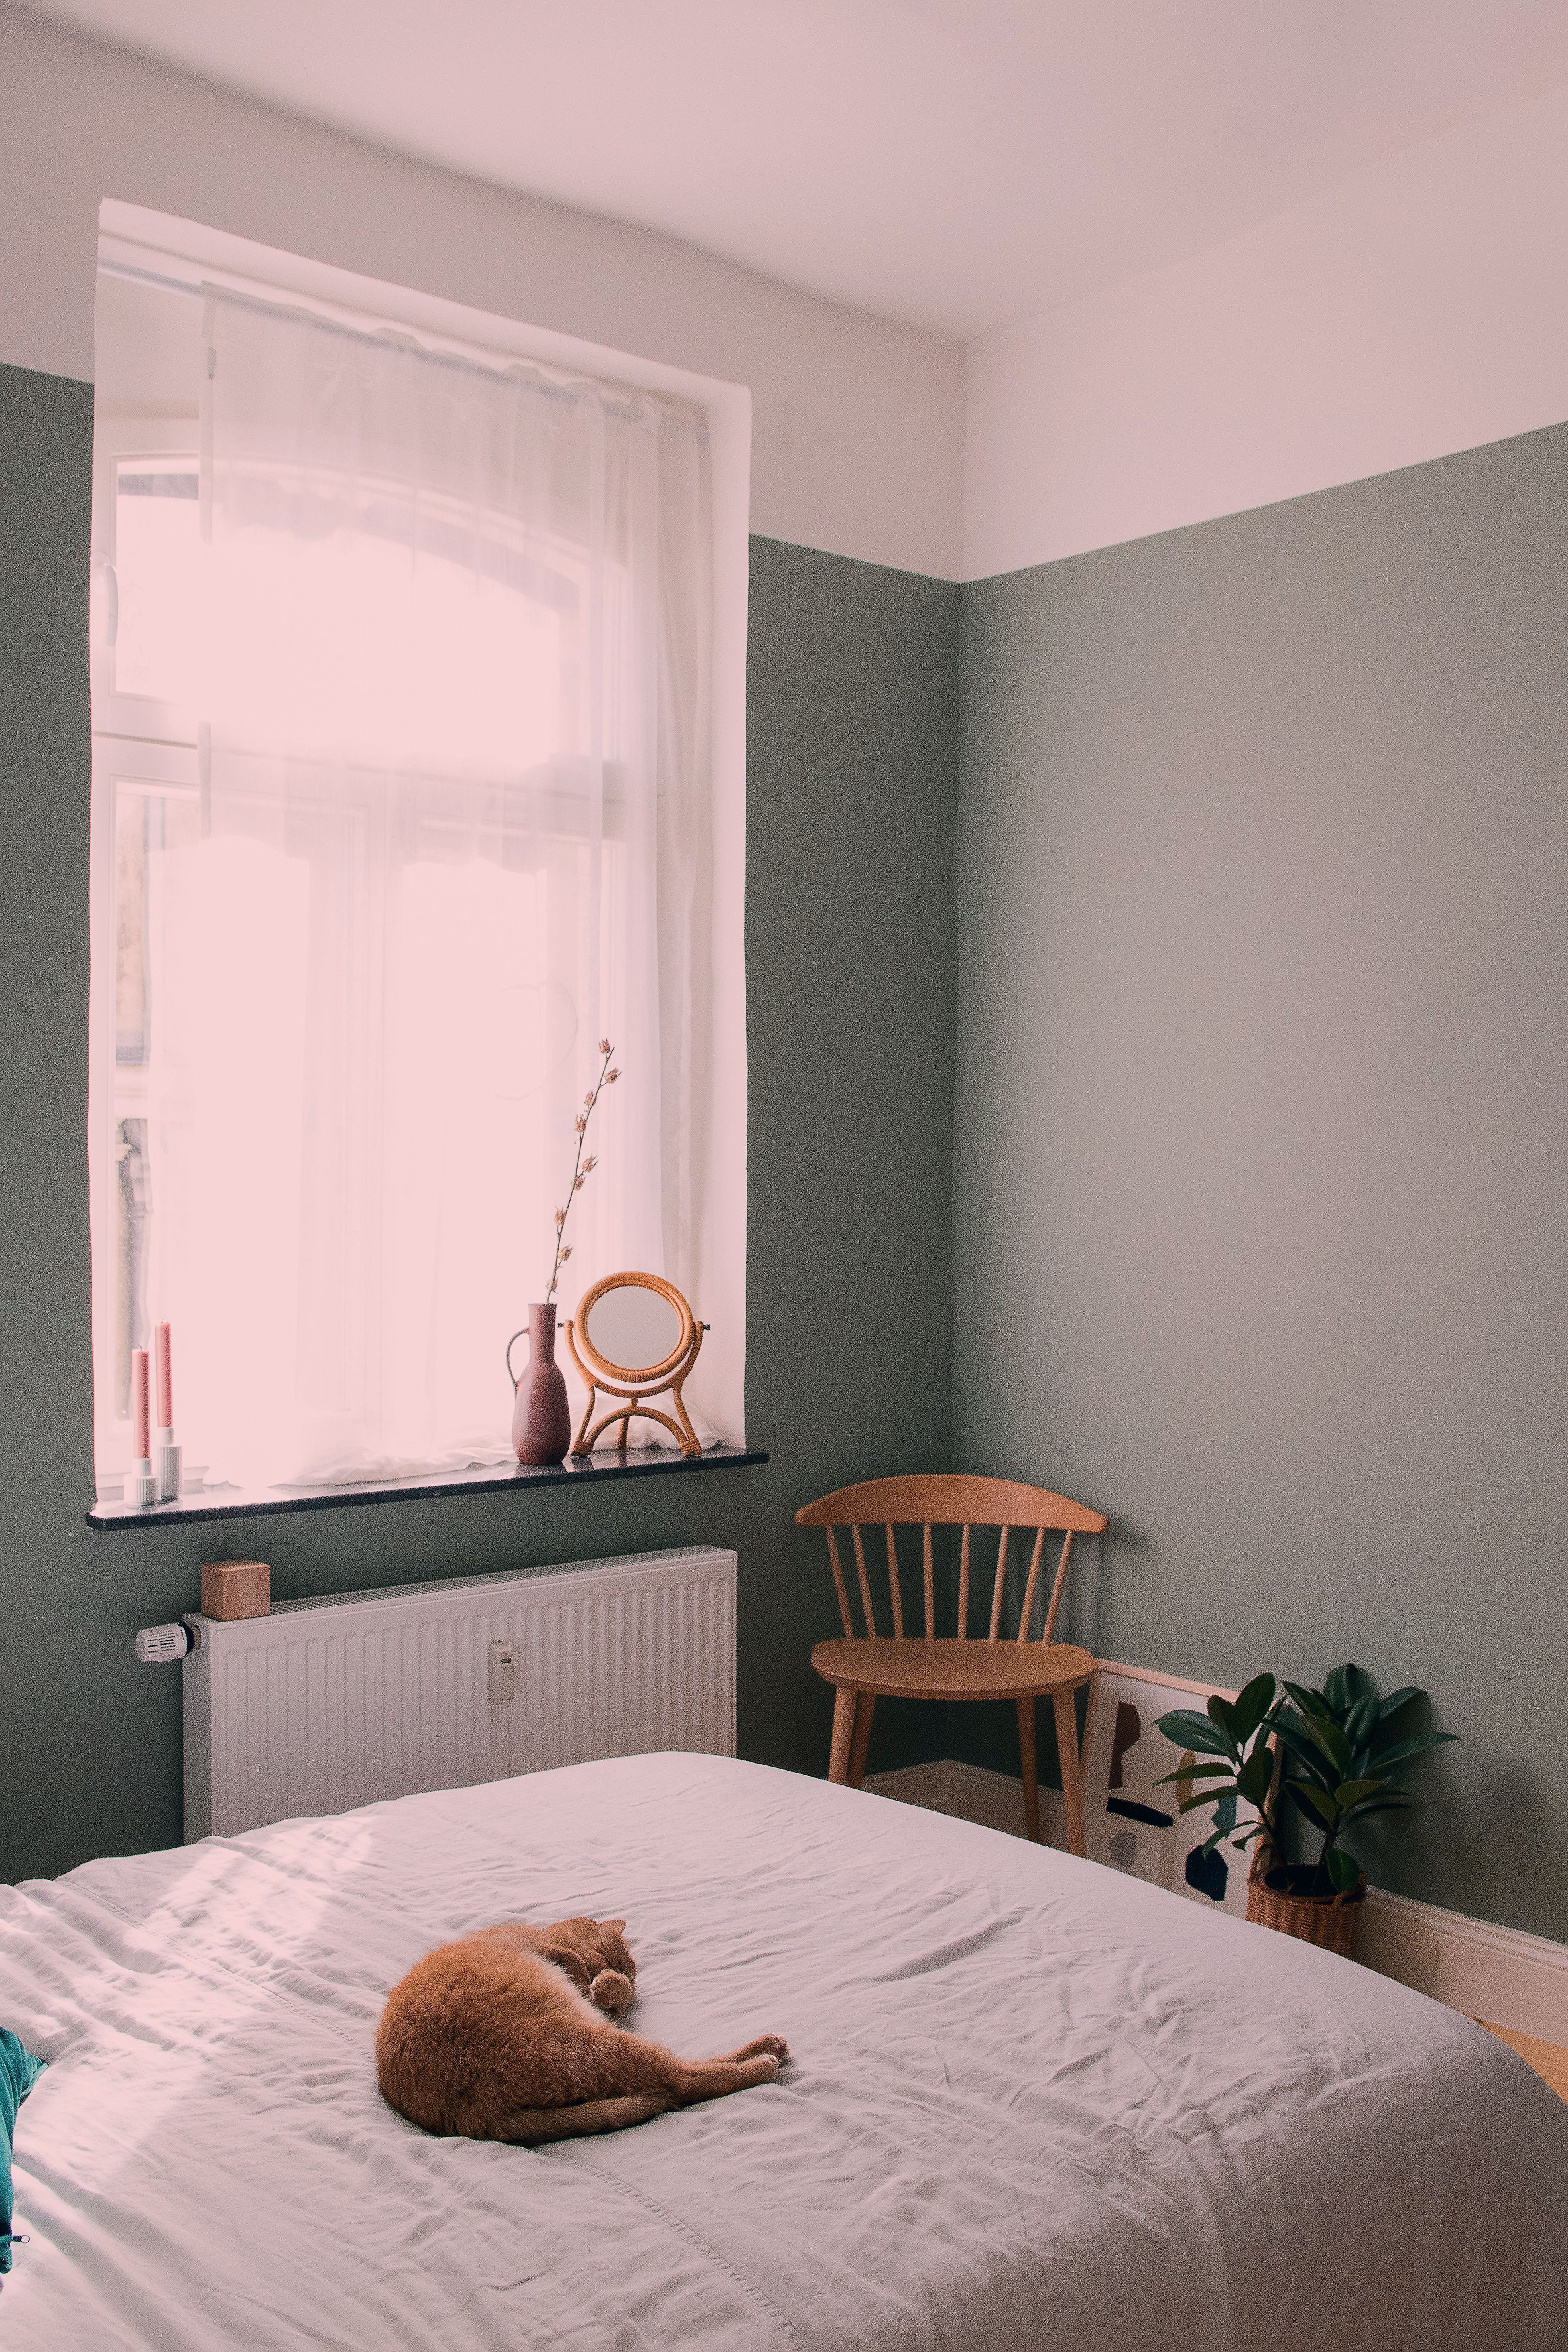 26++ Ideale farbe fuer schlafzimmer Trends